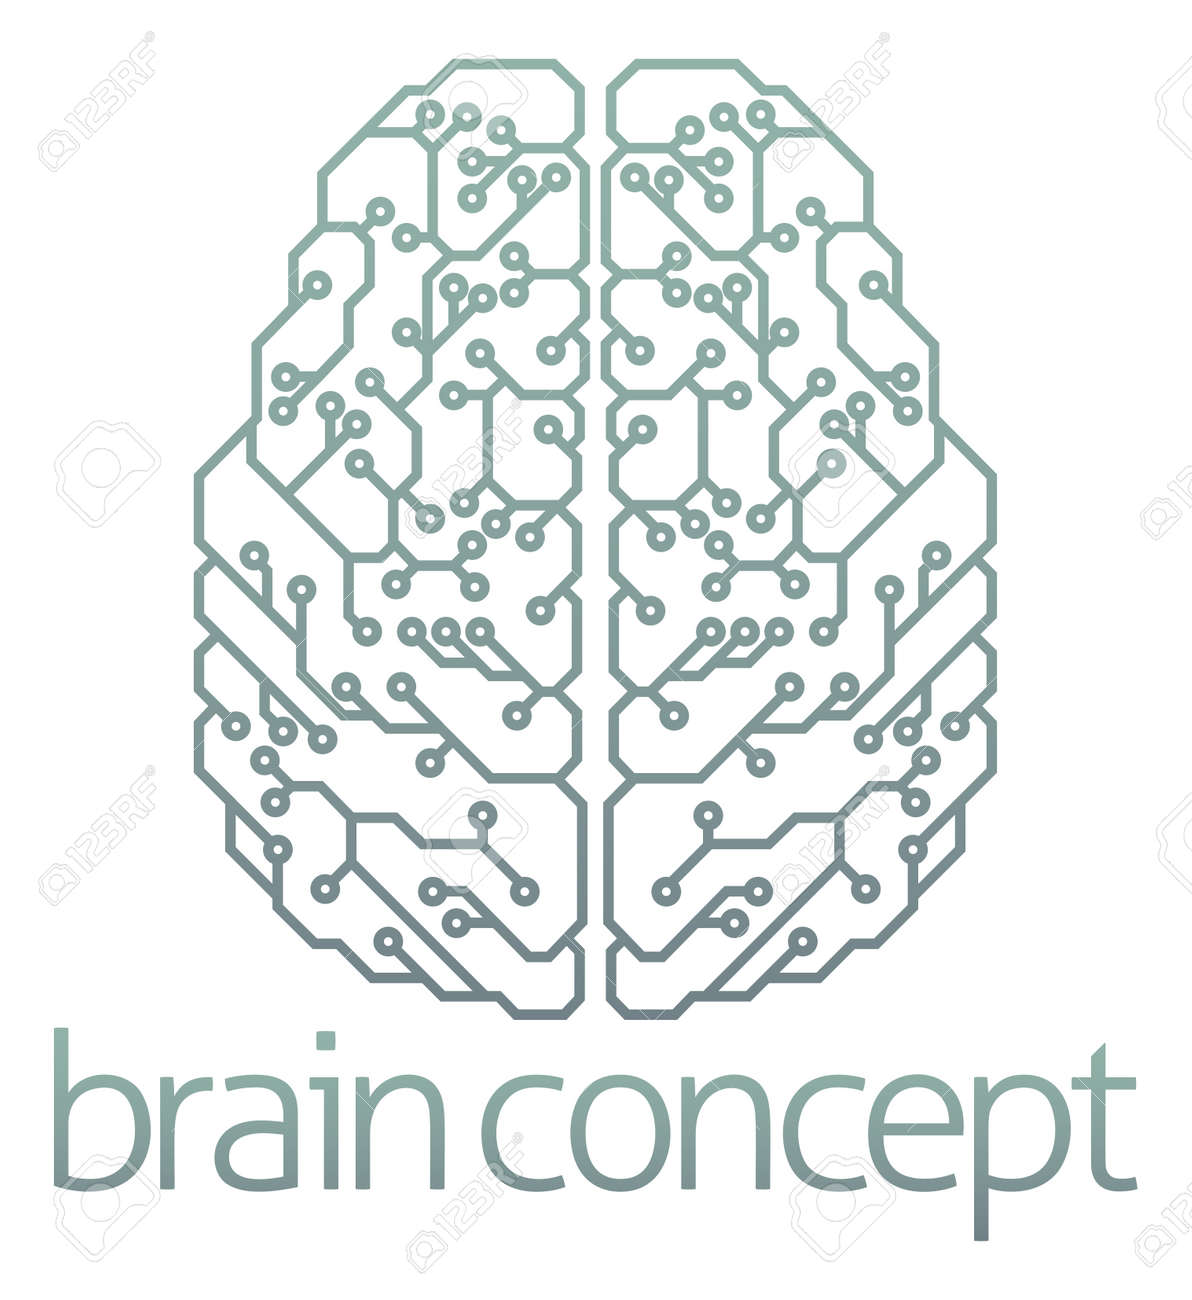 1181 Neuro Stock Illustrations Cliparts And Royalty Free Vectors Circuit Board Binary Code Vector Clipart Transmission Of An Abstract Illustration A Brain Computer Concept Design